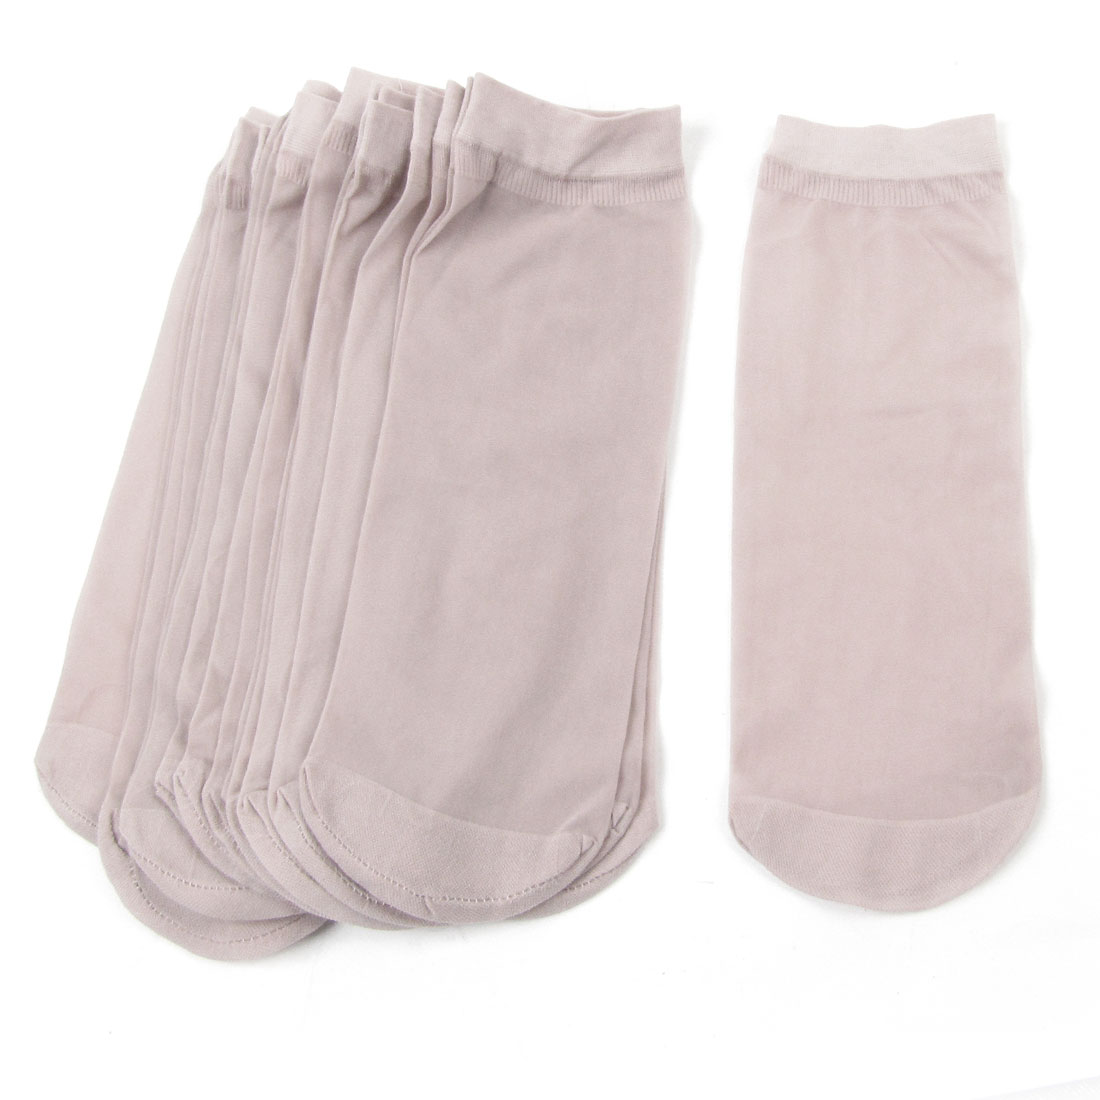 10 Pairs Soft Elastic Pale Pink Sheer Socks for Ladies